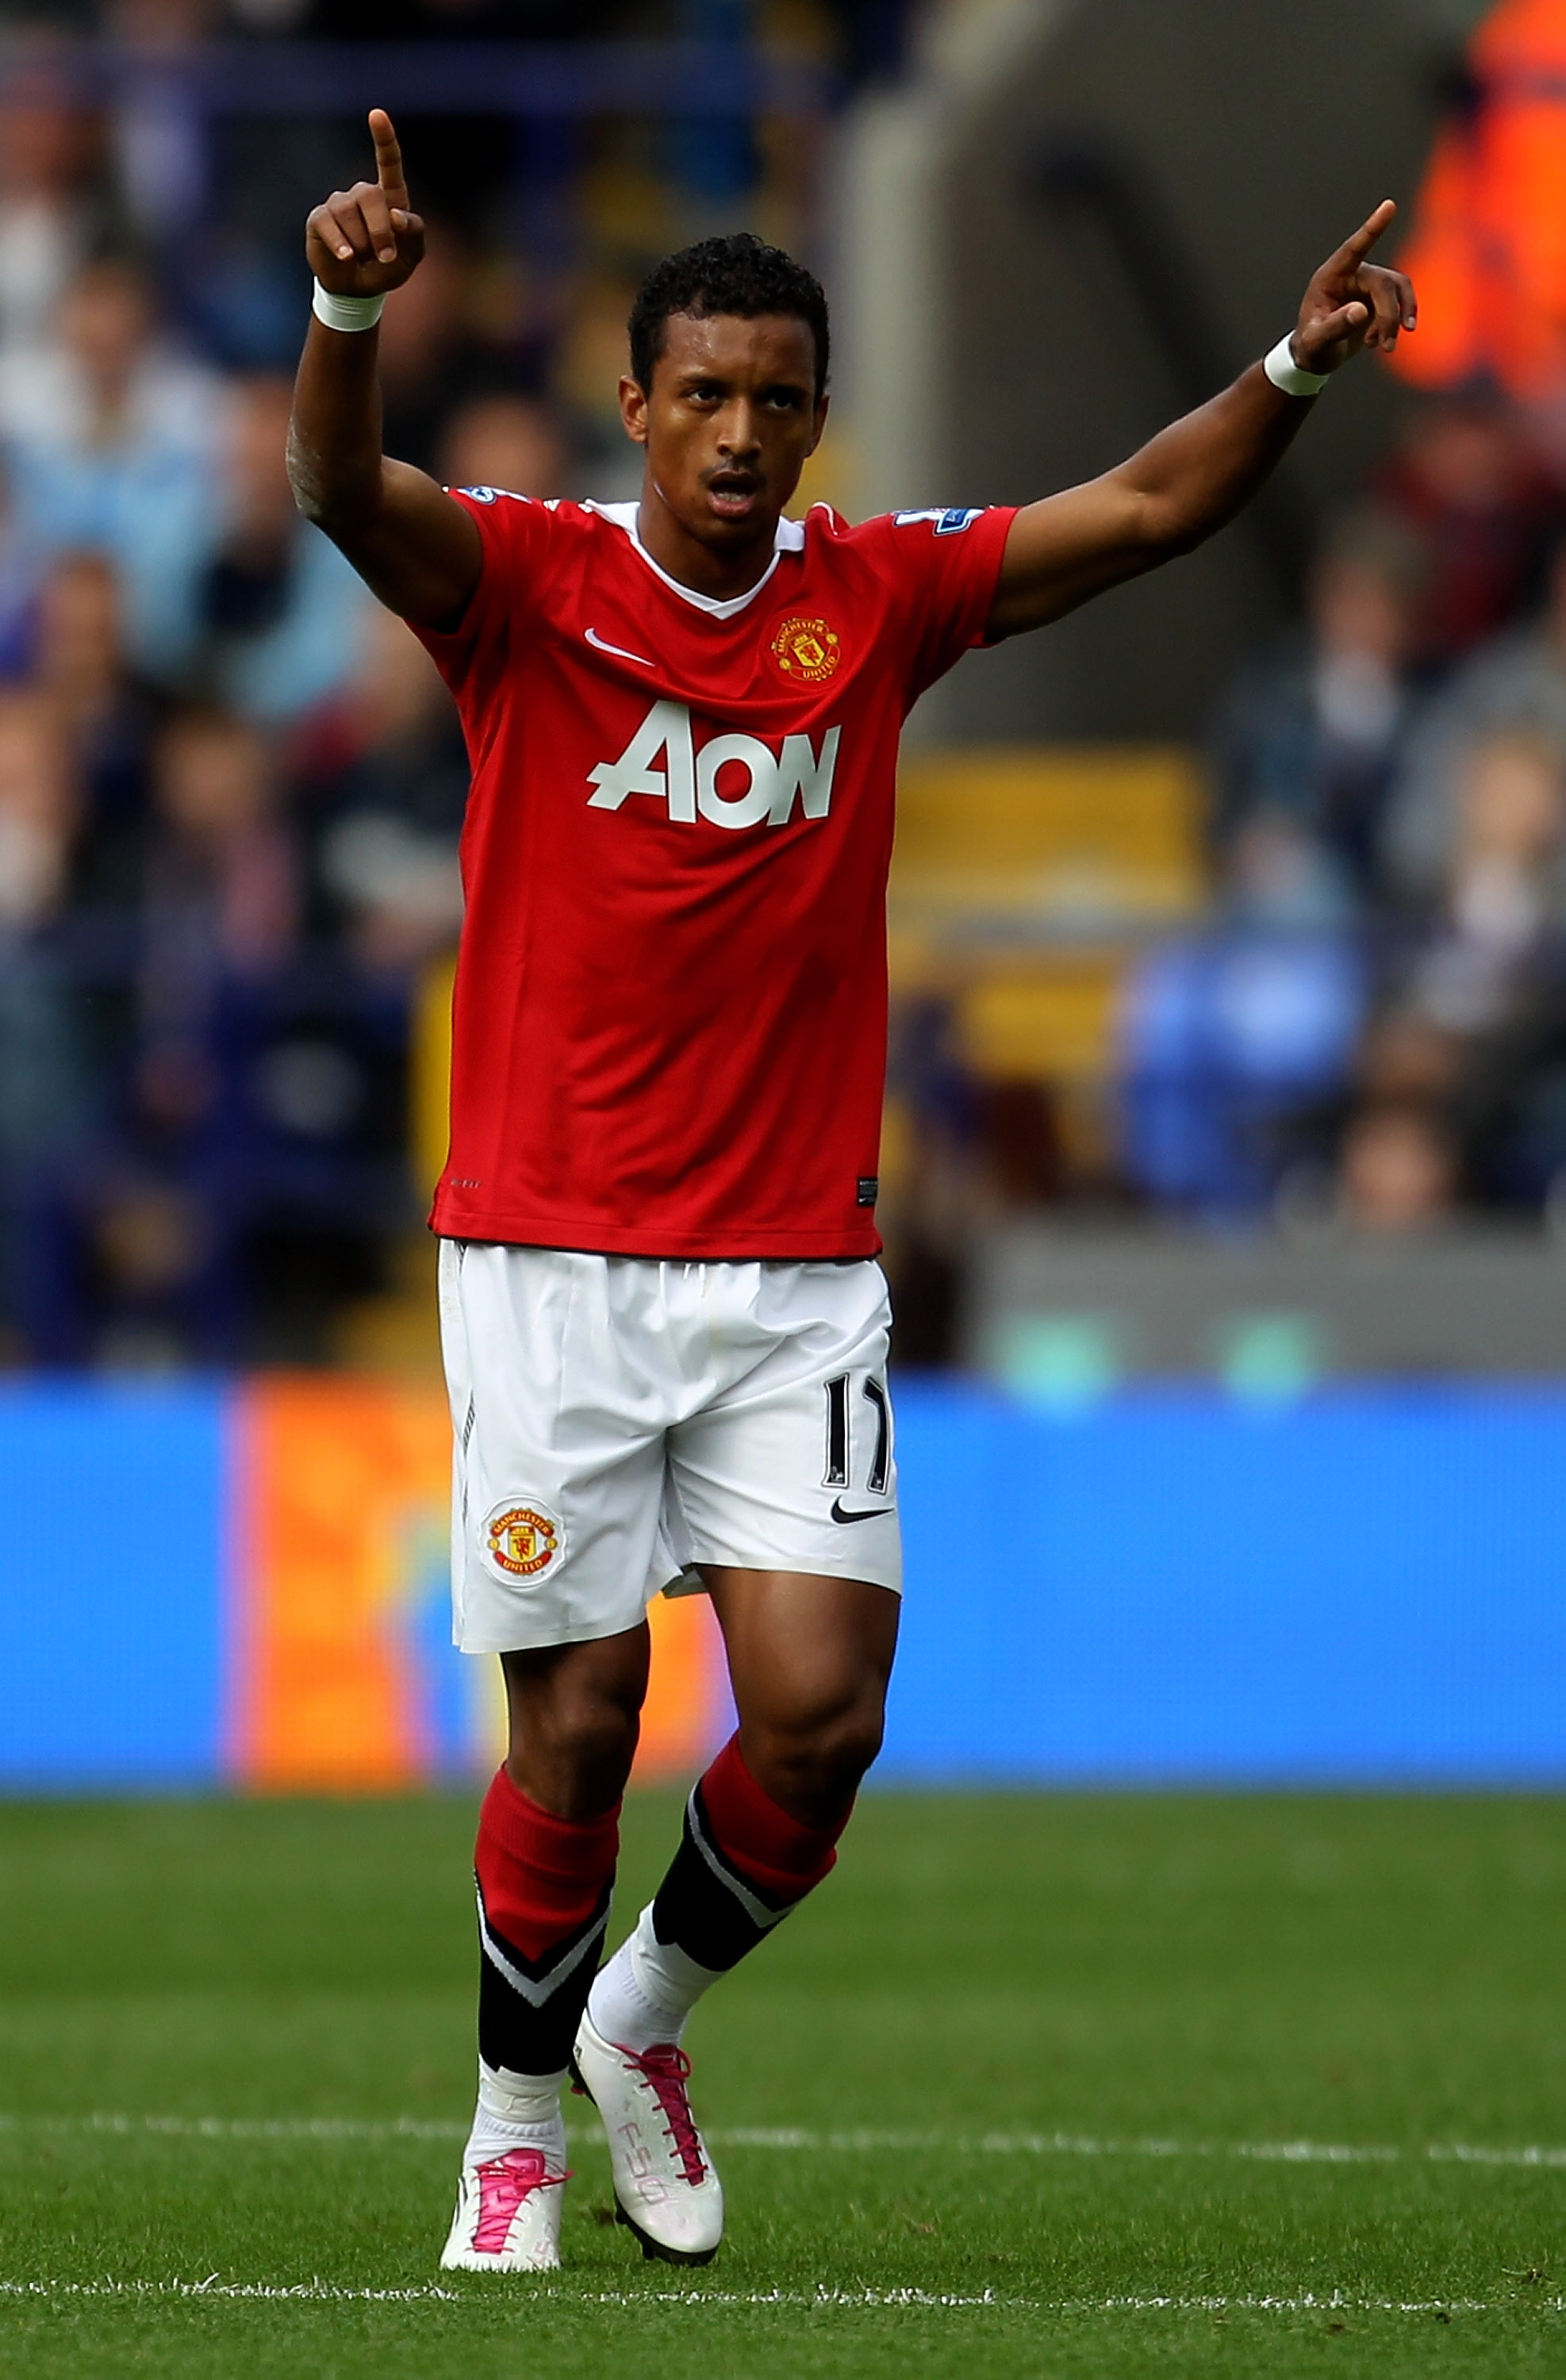 BOLTON, ENGLAND - SEPTEMBER 26:   Nani of Manchester United celebrates scoring his team's first goal during the Barclays Premier League match between Bolton Wanderers and Manchester United at the Reebok Stadium on September 26, 2010 in Bolton, England. (P